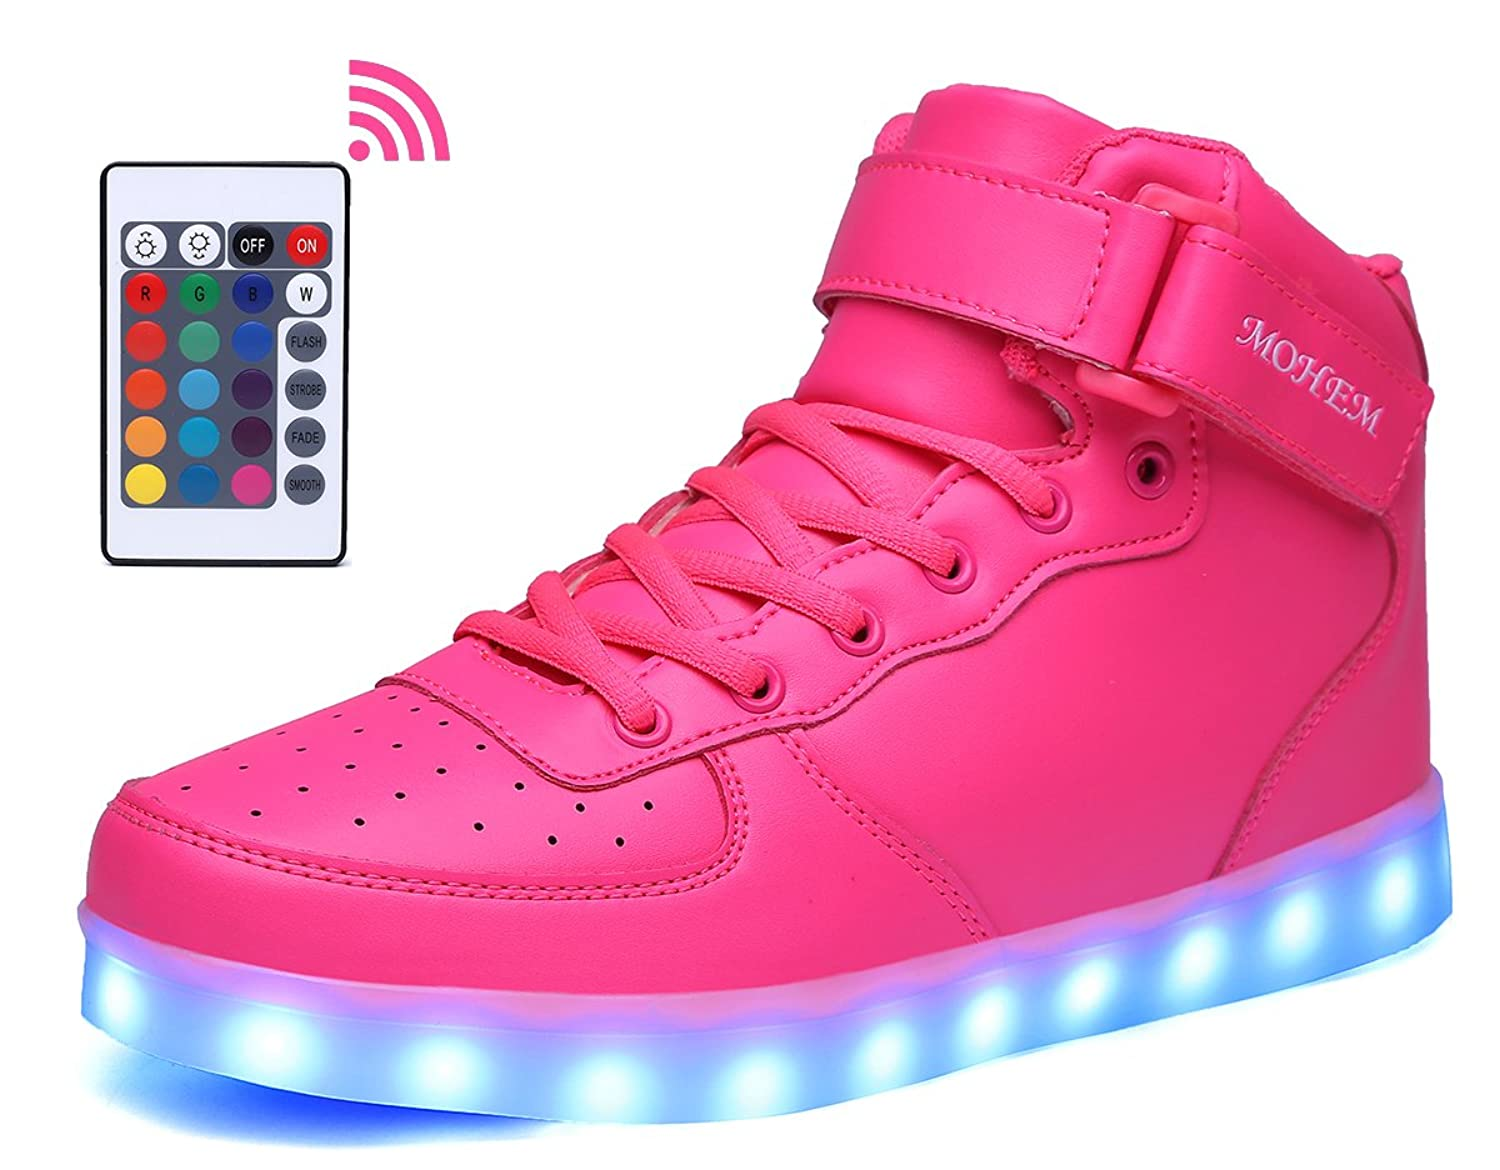 ShinyNight High Top LED Shoes Light Up USB Charging